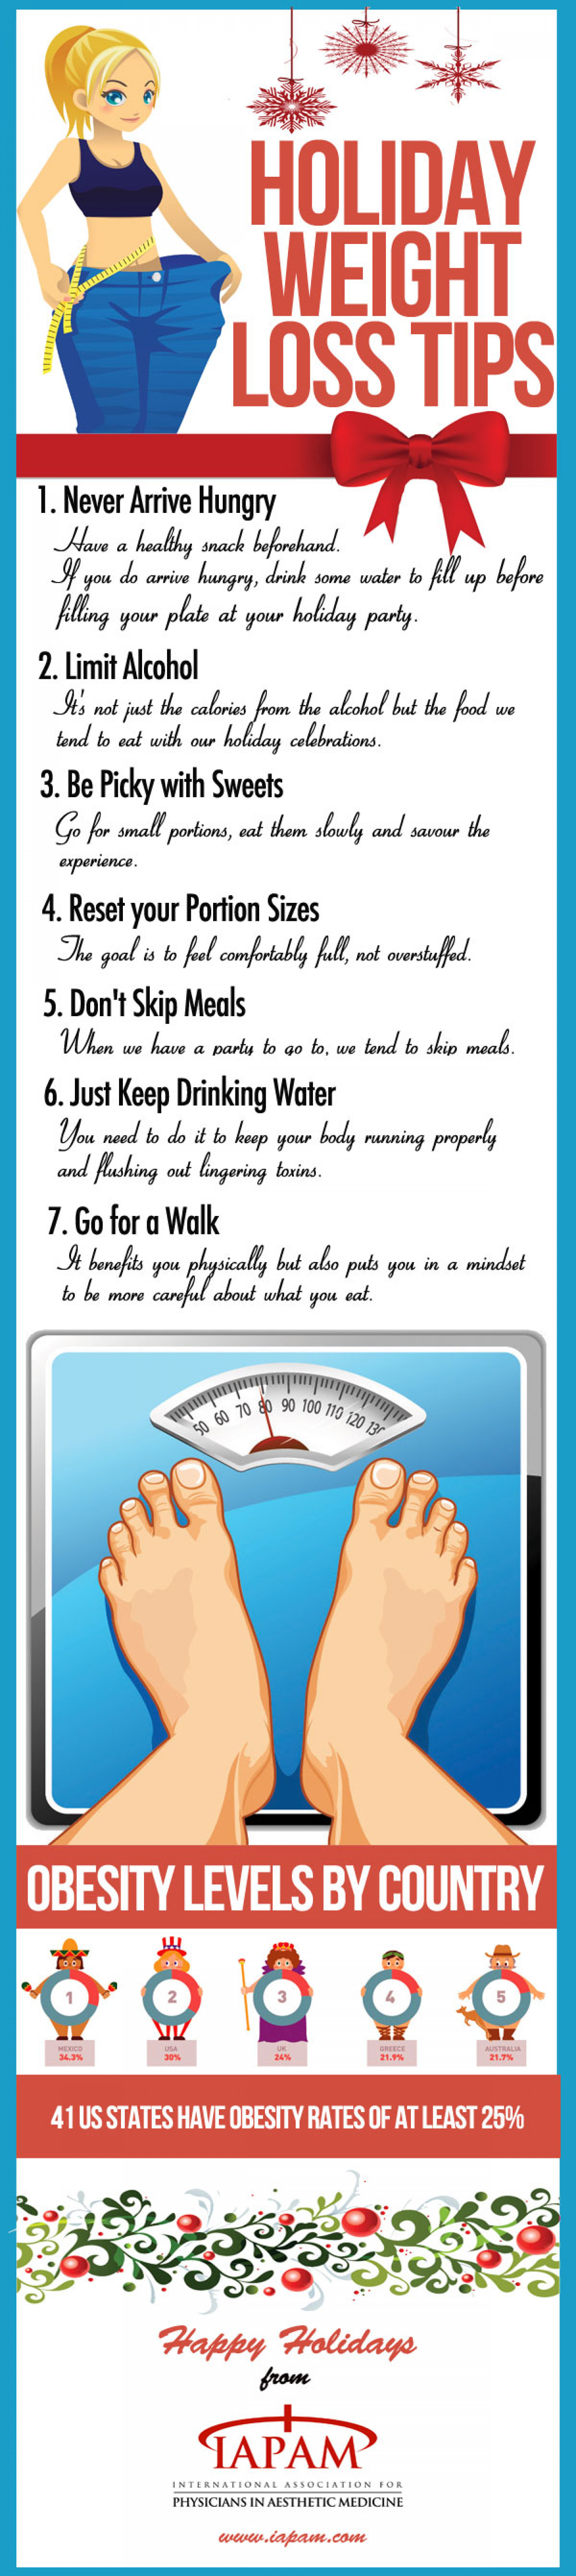 Holiday Weight Loss Tips Infographic